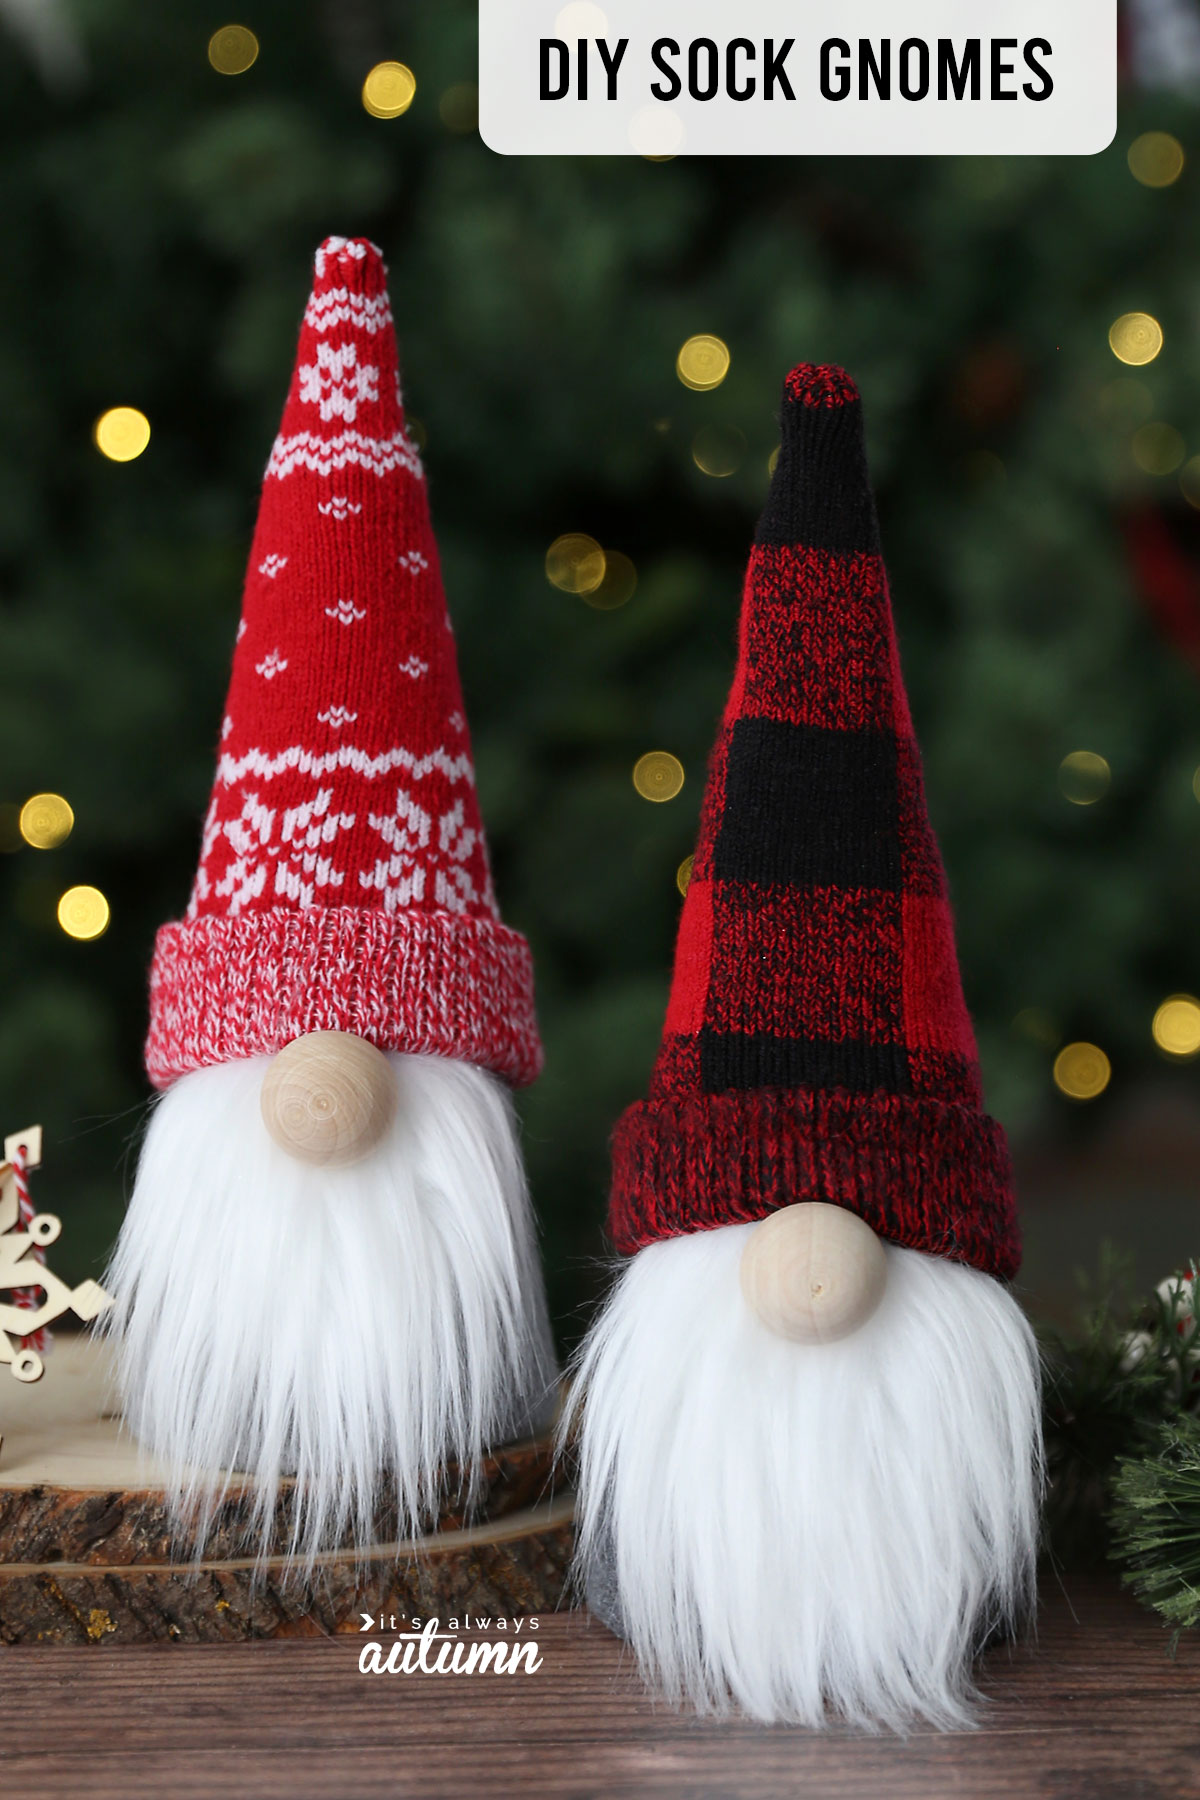 DIY sock gnomes made with cute red, white, and black patterned Christmas socks